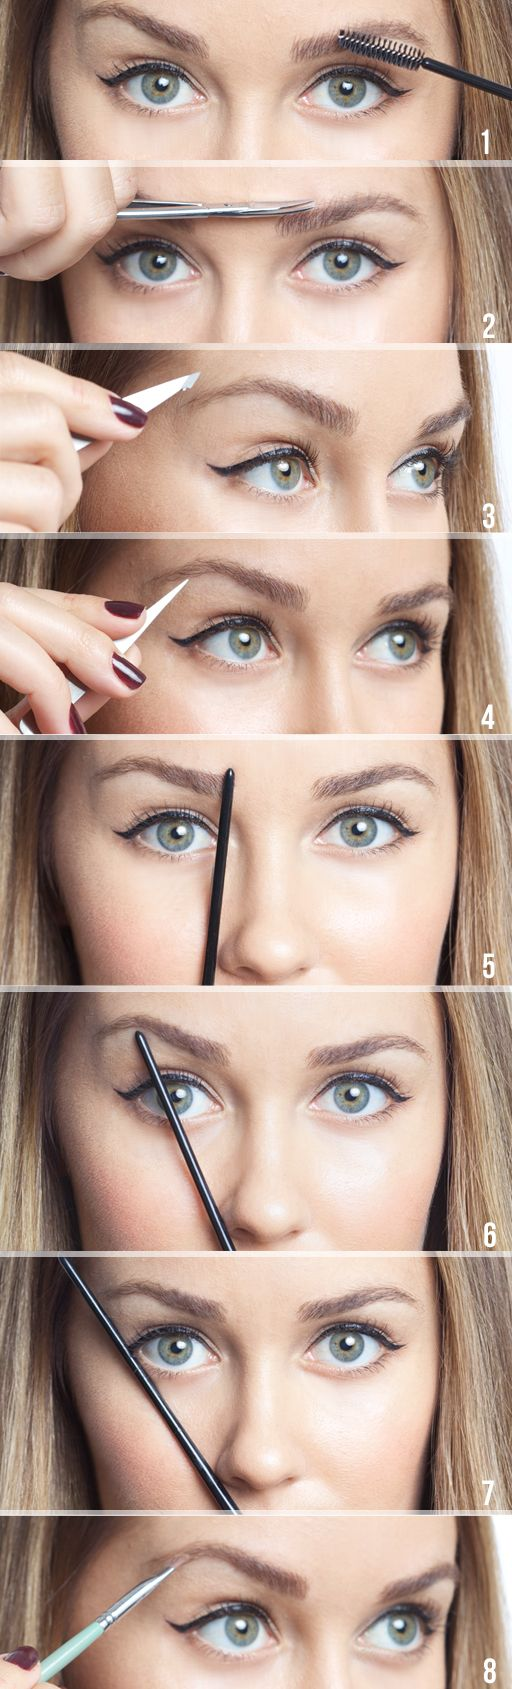 This is so great because the correct brow shape can really lift the eye and slim the face.  First let me share my #1 rule: DO NOT OVER-PLUCK!!  Please!  There is nothing pretty about thin overly-tweezed brows.  Brows frame your eyes.  Cardinal sin #2: do not shape them into tadpoles with thin tails.  Cardinal sin #3: do not shave them or use a razor of any kind.  If ...